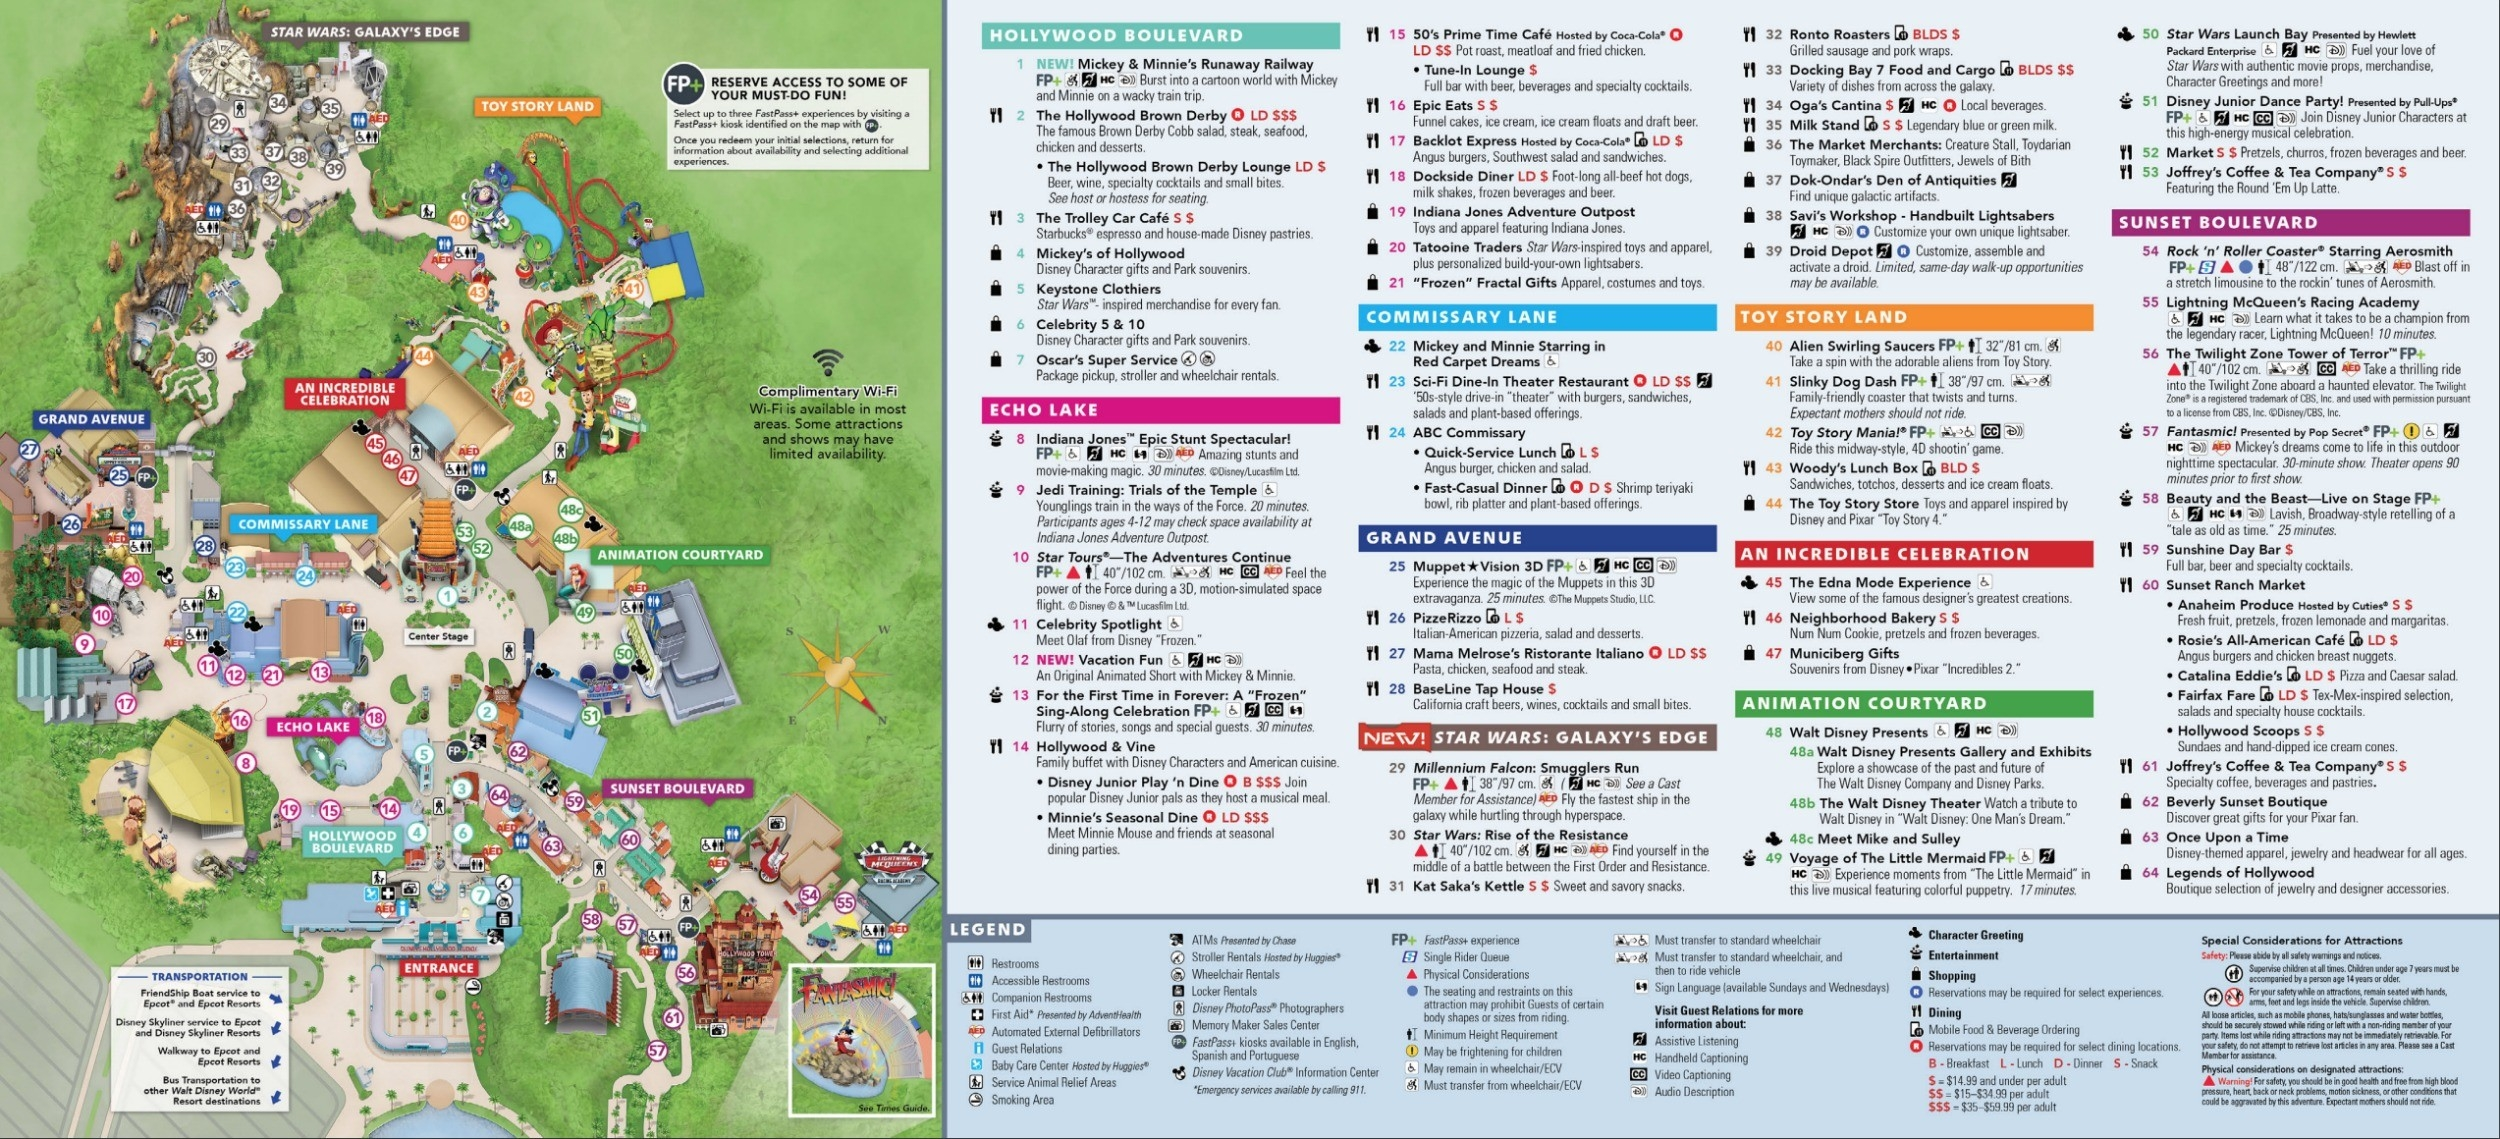 Disney's Hollywood Studios Map At Walt Disney World  2020 List Of Disney Rides